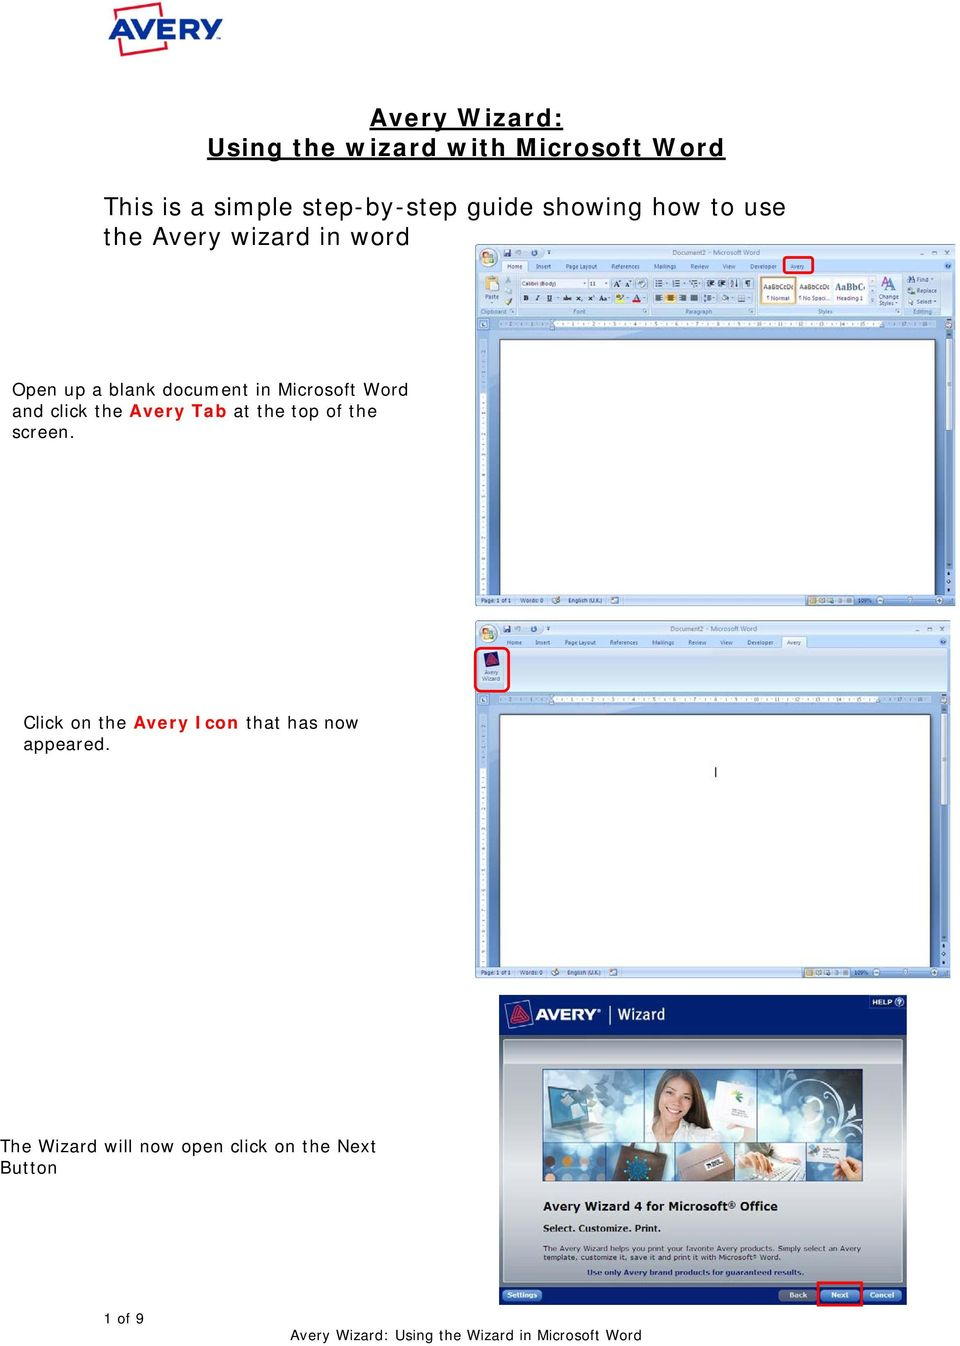 Avery Wizard For Microsoft Word : avery, wizard, microsoft, Avery, Wizard:, Using, Wizard, Microsoft, Word., Simple, Step-by-step, Guide, Showing, Download